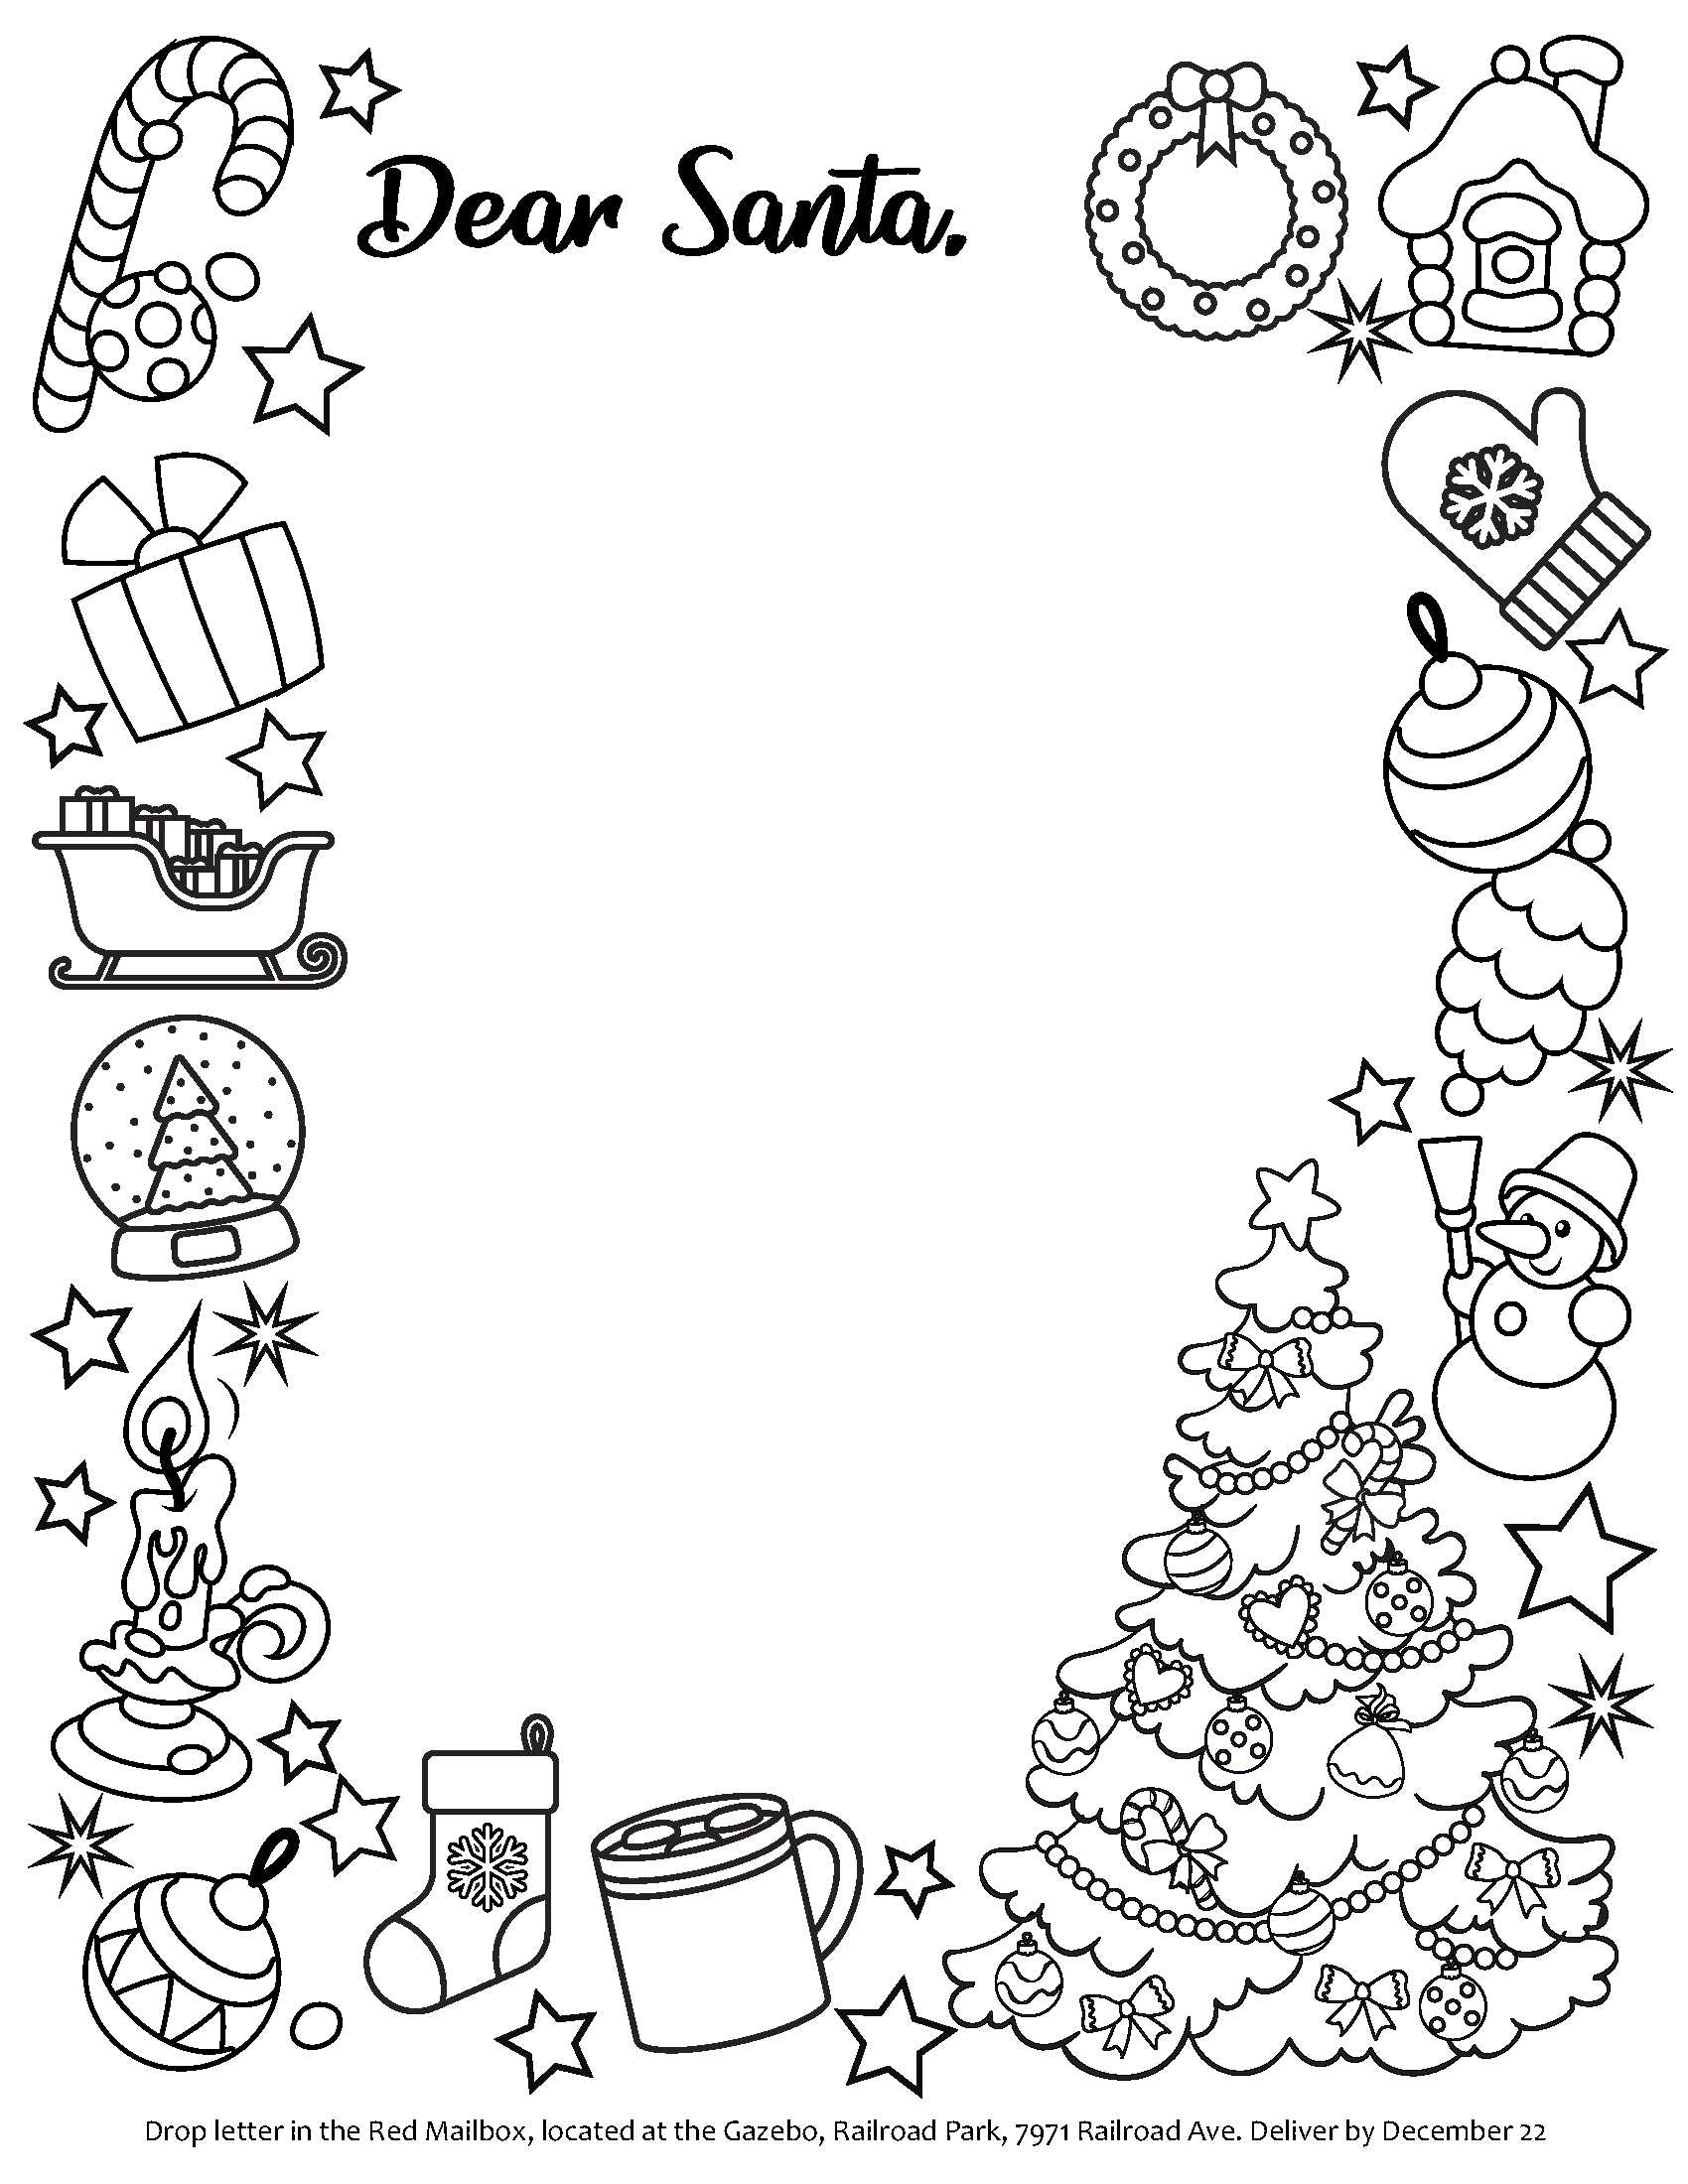 This is a template letter for children to use to write to Santa.